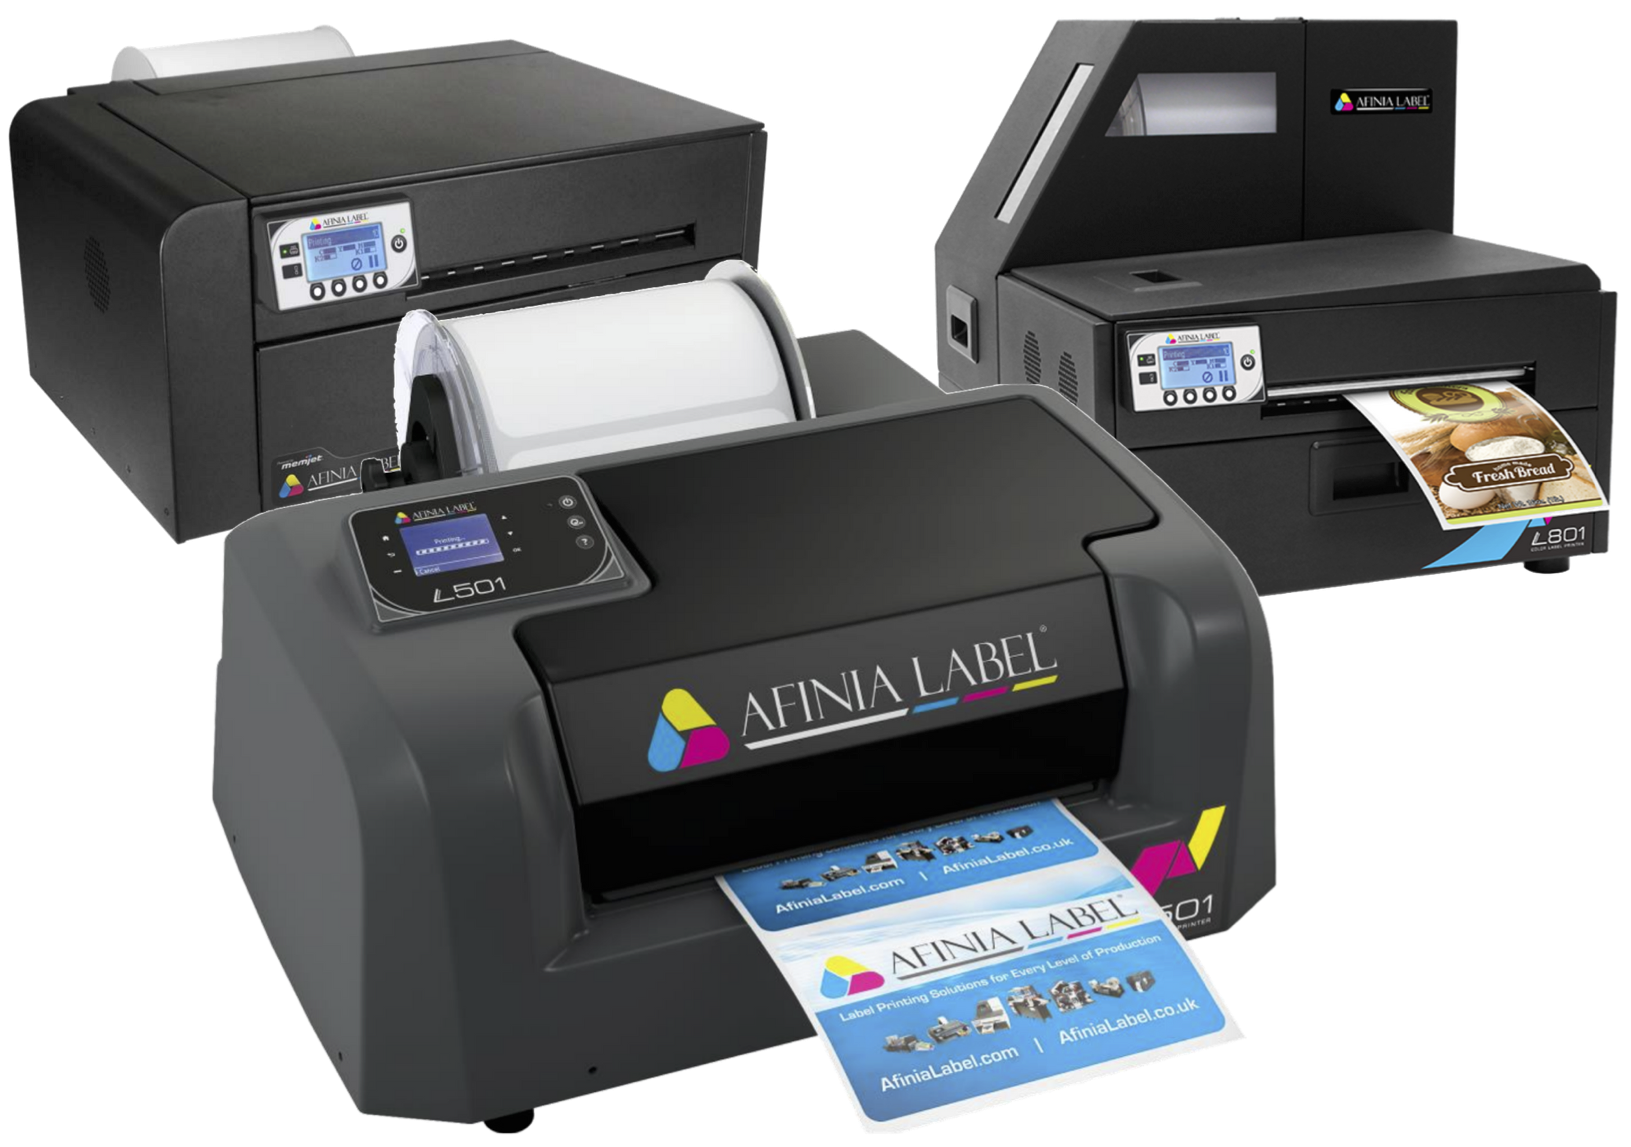 Afinia Labeling Printers